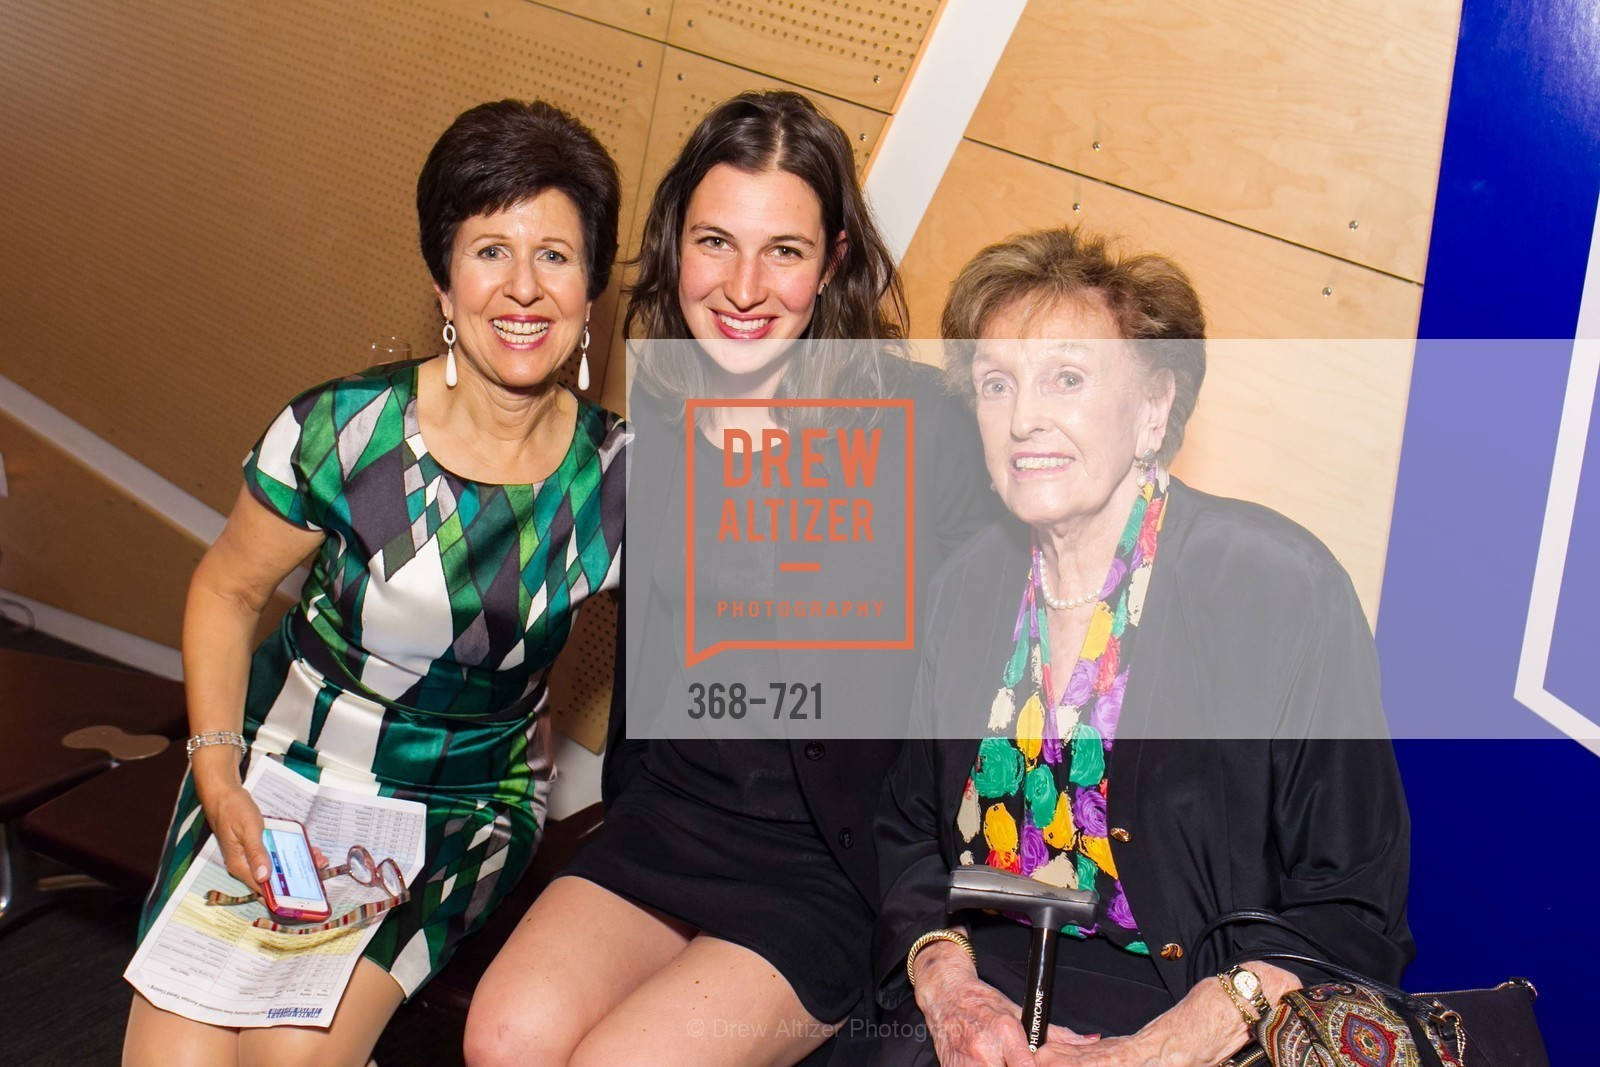 Diane Zack, Claire Frost, Thelma Colden, The 2015 Dorothy Saxe Invitational Celebration at the JEWISH MUSEUM, US, May 12th, 2015,Drew Altizer, Drew Altizer Photography, full-service agency, private events, San Francisco photographer, photographer california